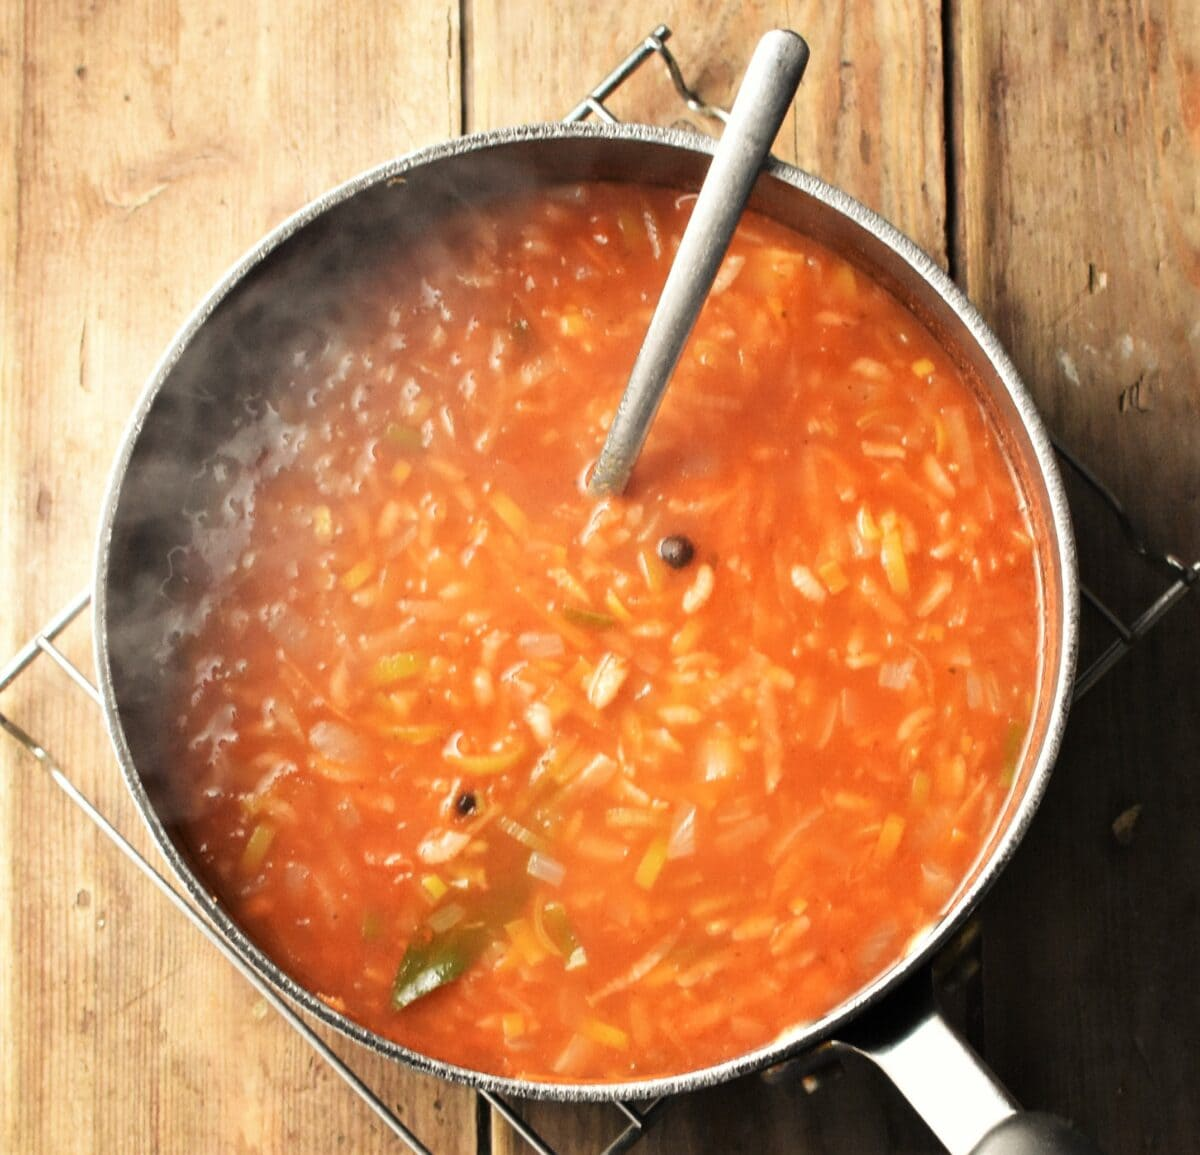 Steaming tomato and rice soup with vegetables in large pot with spoon.